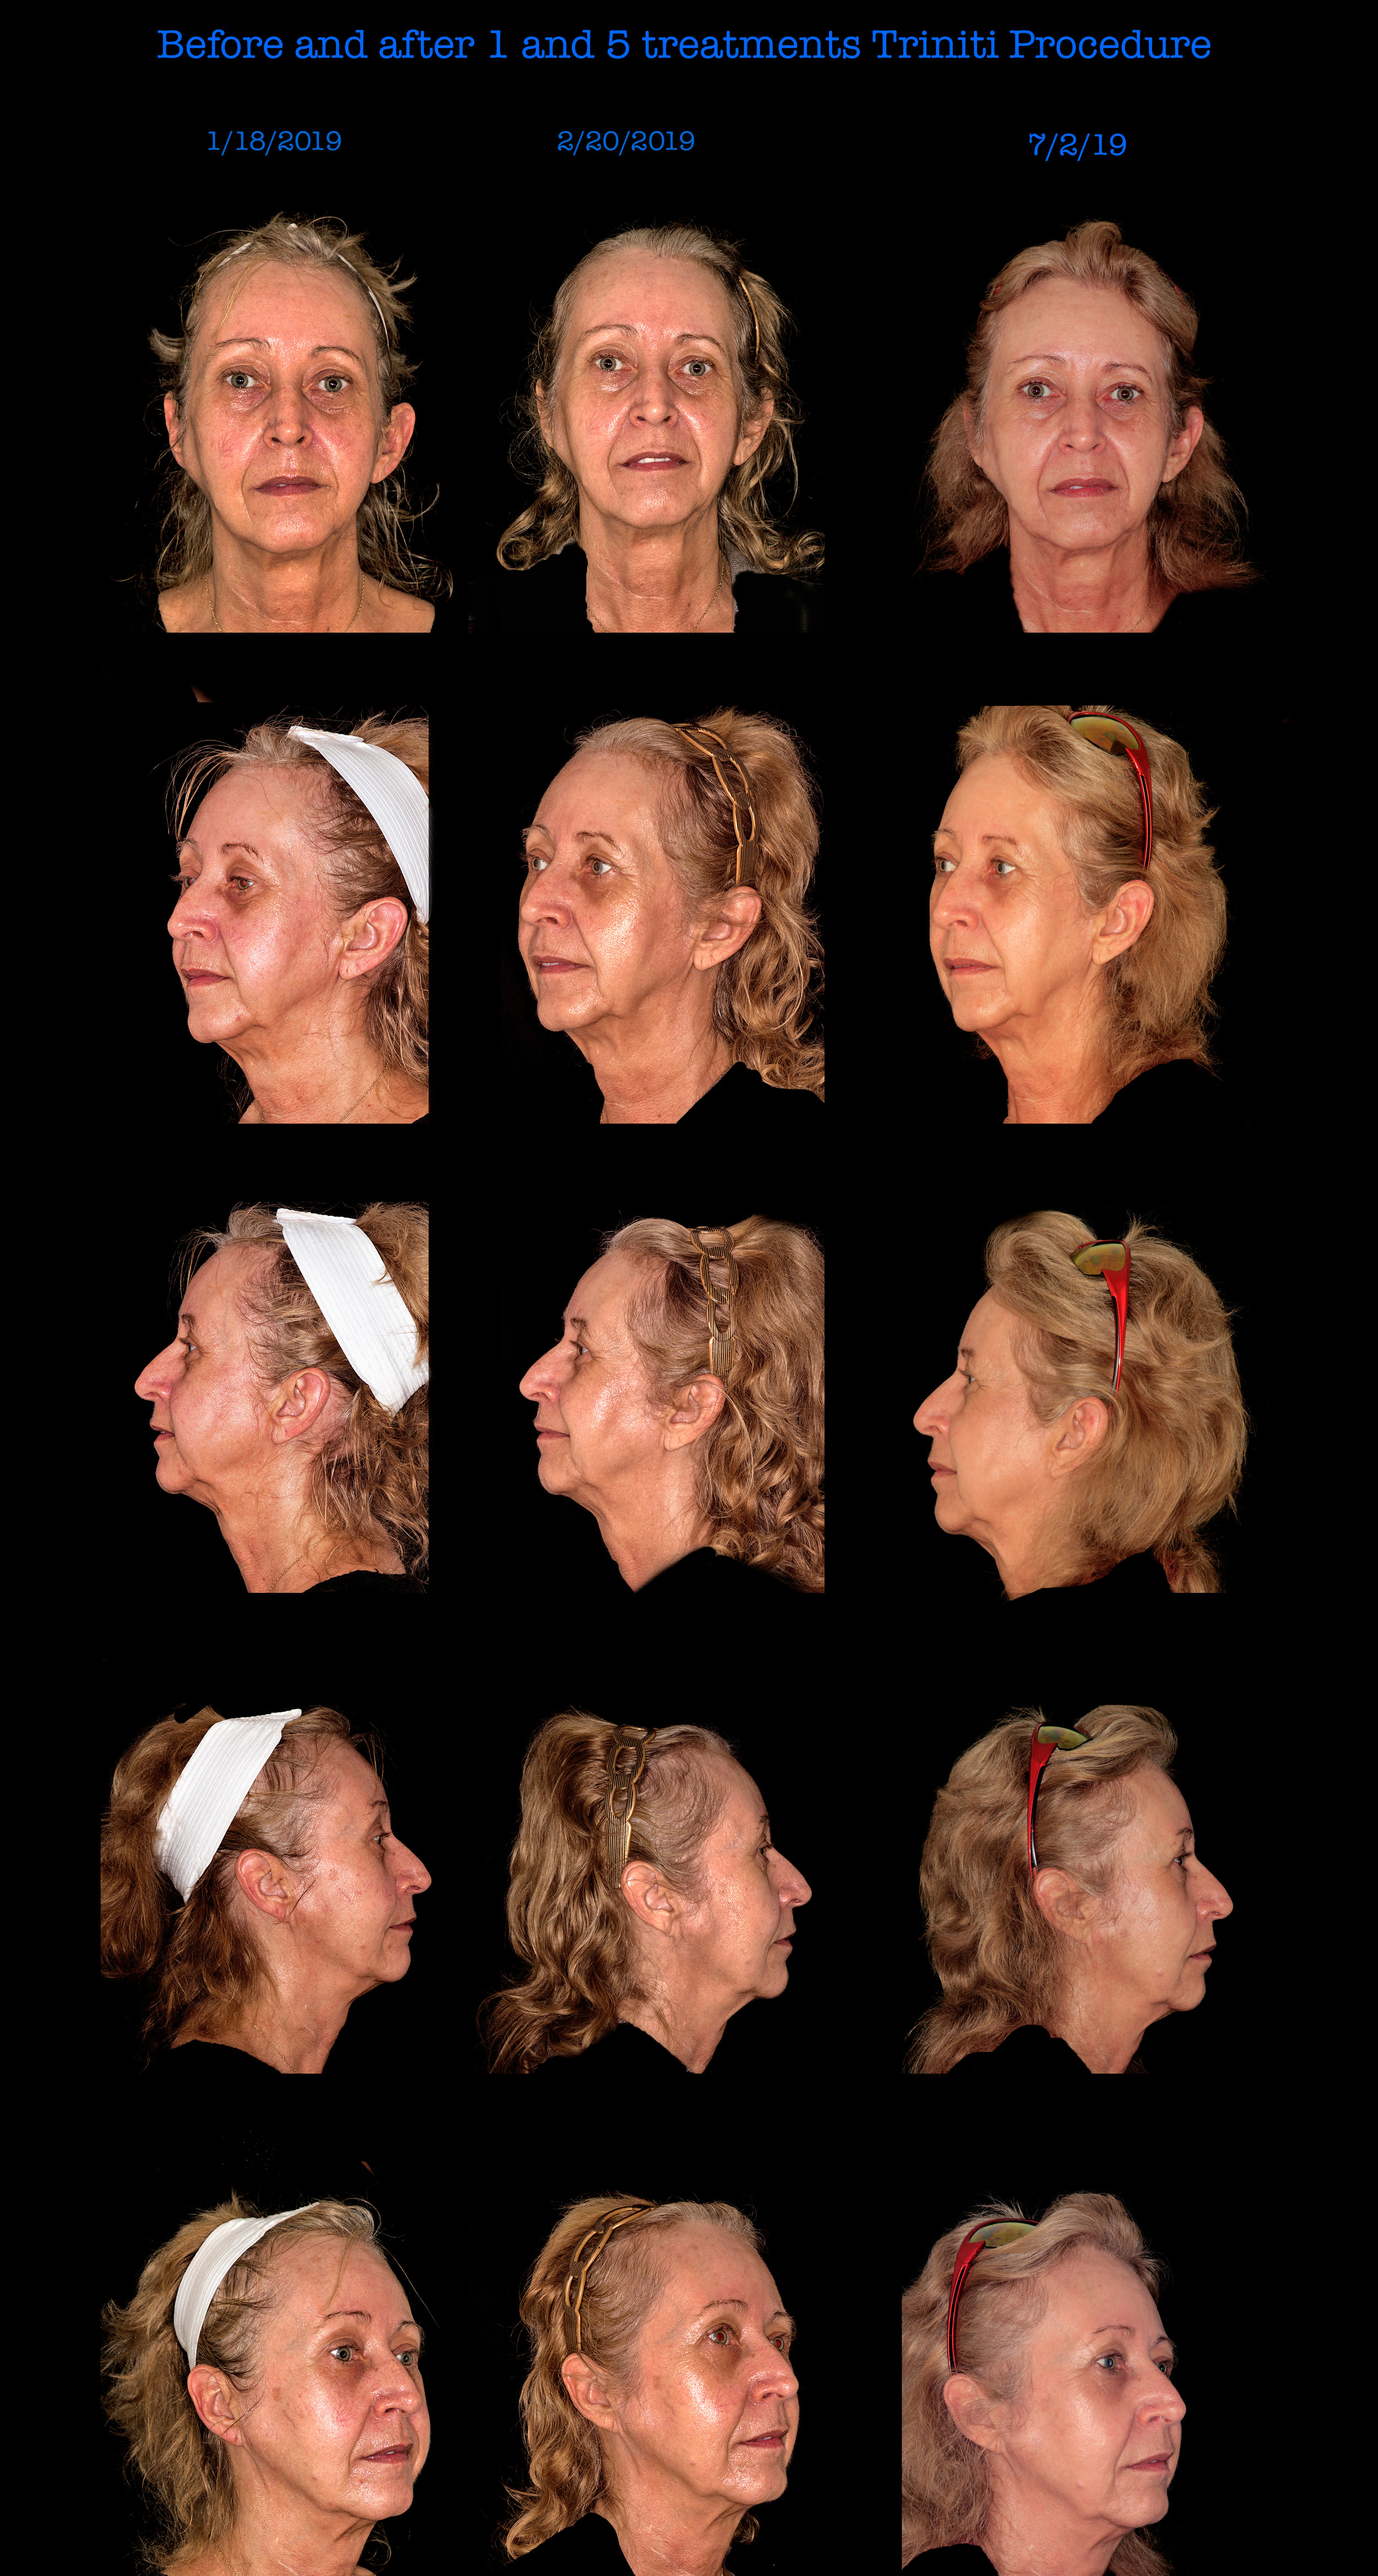 Before and After 1 Trinity Treatment and 5 Trinity Treatments with our Elos Machine! Available at Mooney and Berry Gynecologists in Hammond, LA